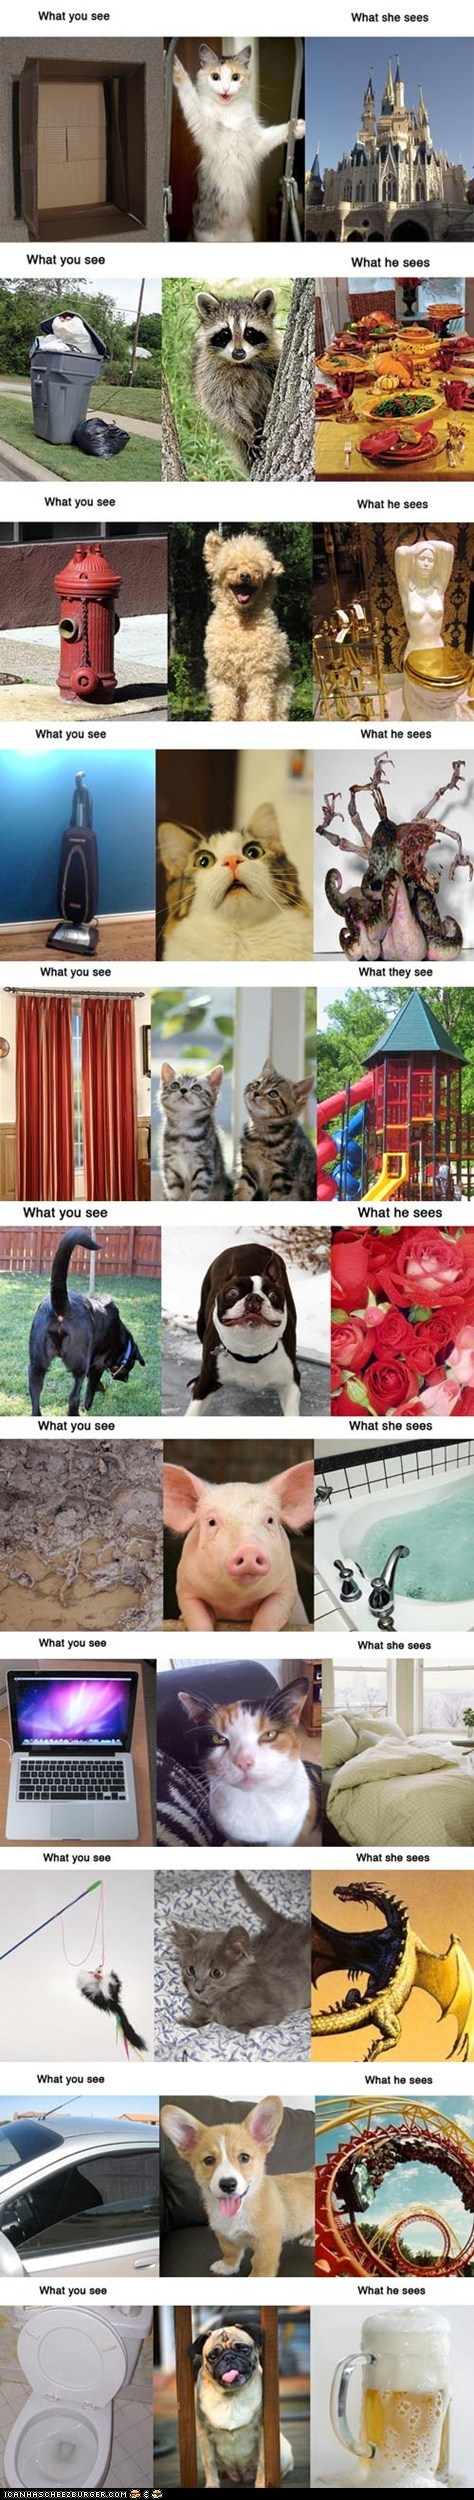 best of the week,Cats,dogs,perception,pig,raccoons,vs,what i see,what they see